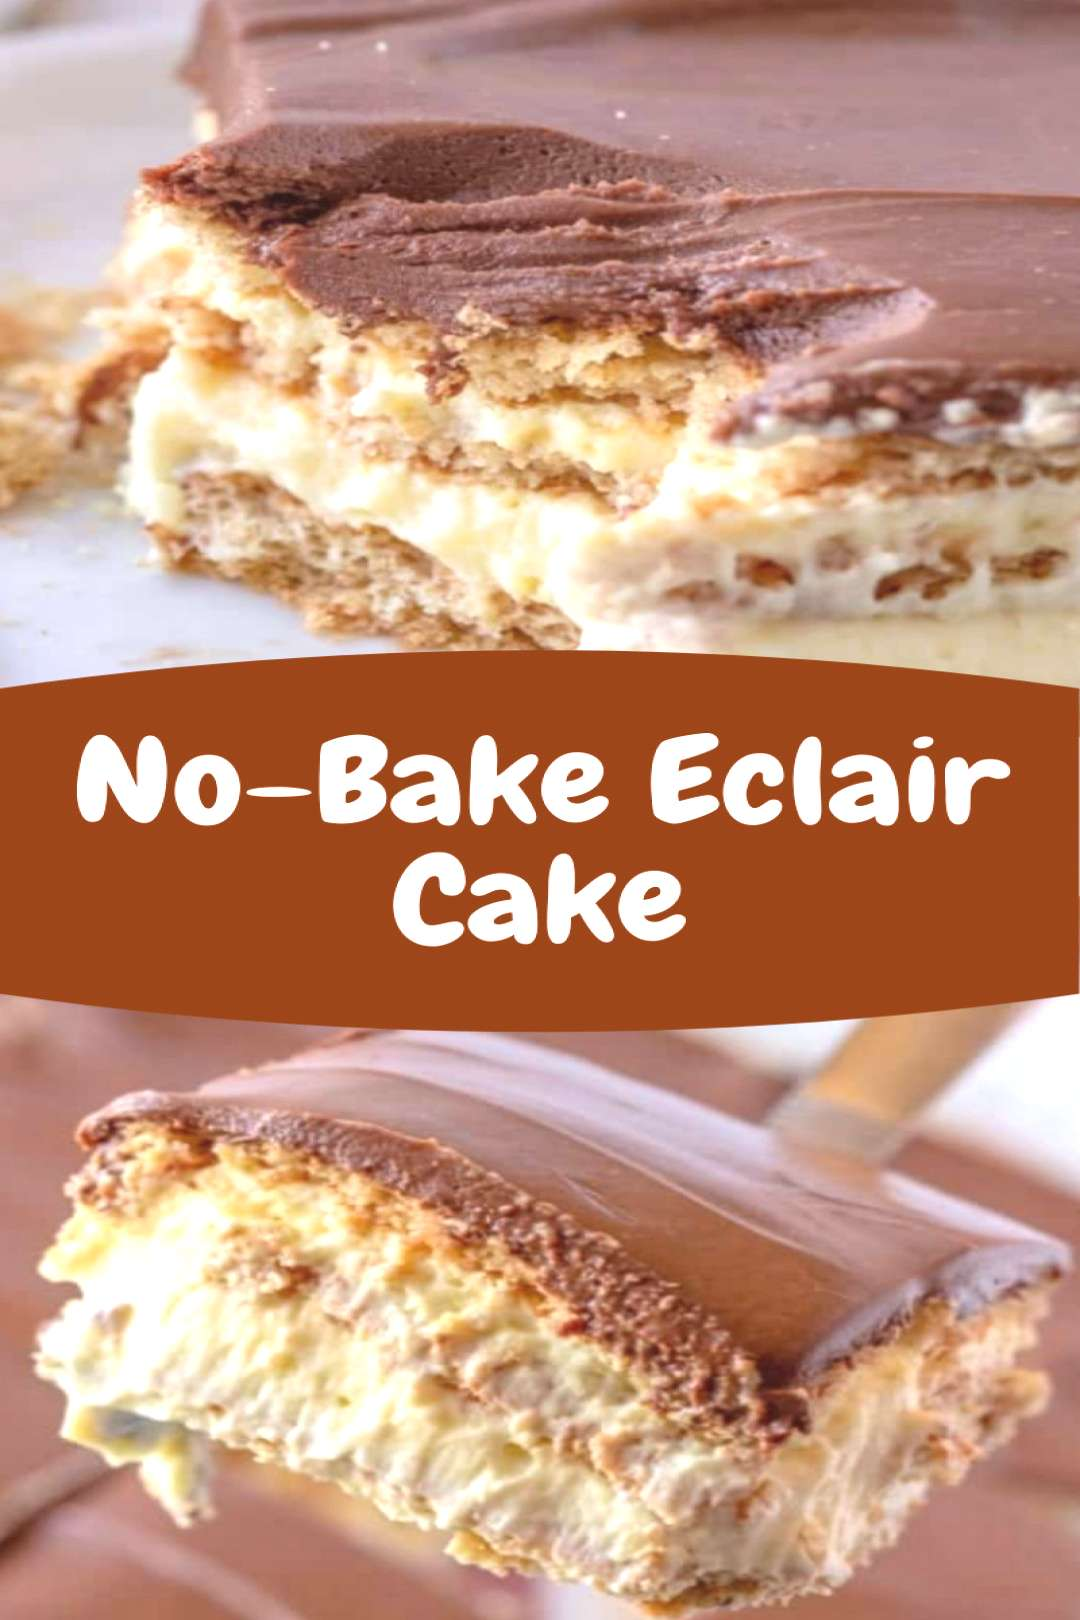 No-Bake Eclair Cake Easy No-Bake Eclair Cake Ideas, I am sure youll love them too! FOLLOW my accou